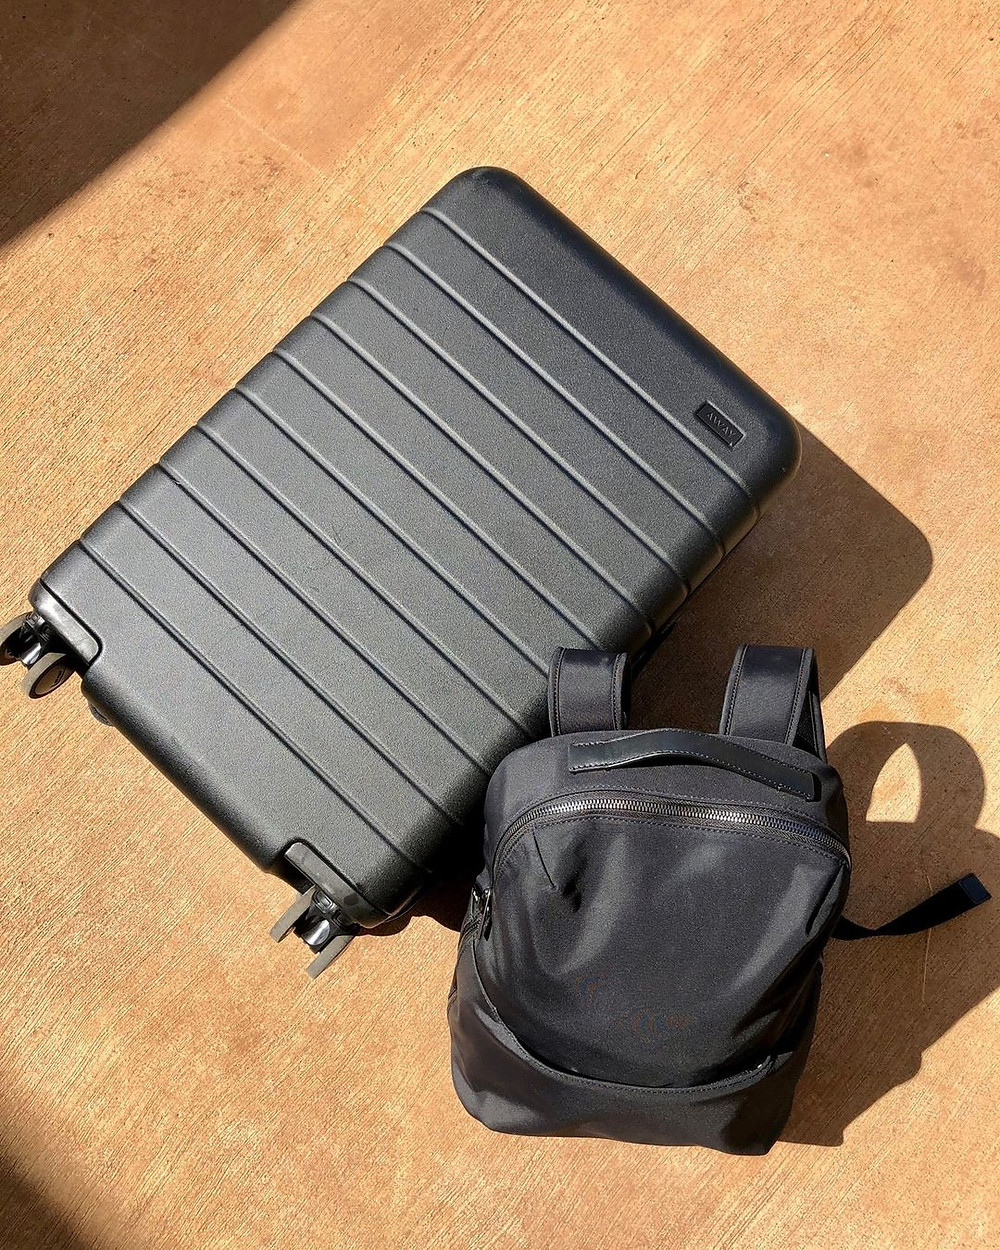 Away carry on suitcase and a small backpack